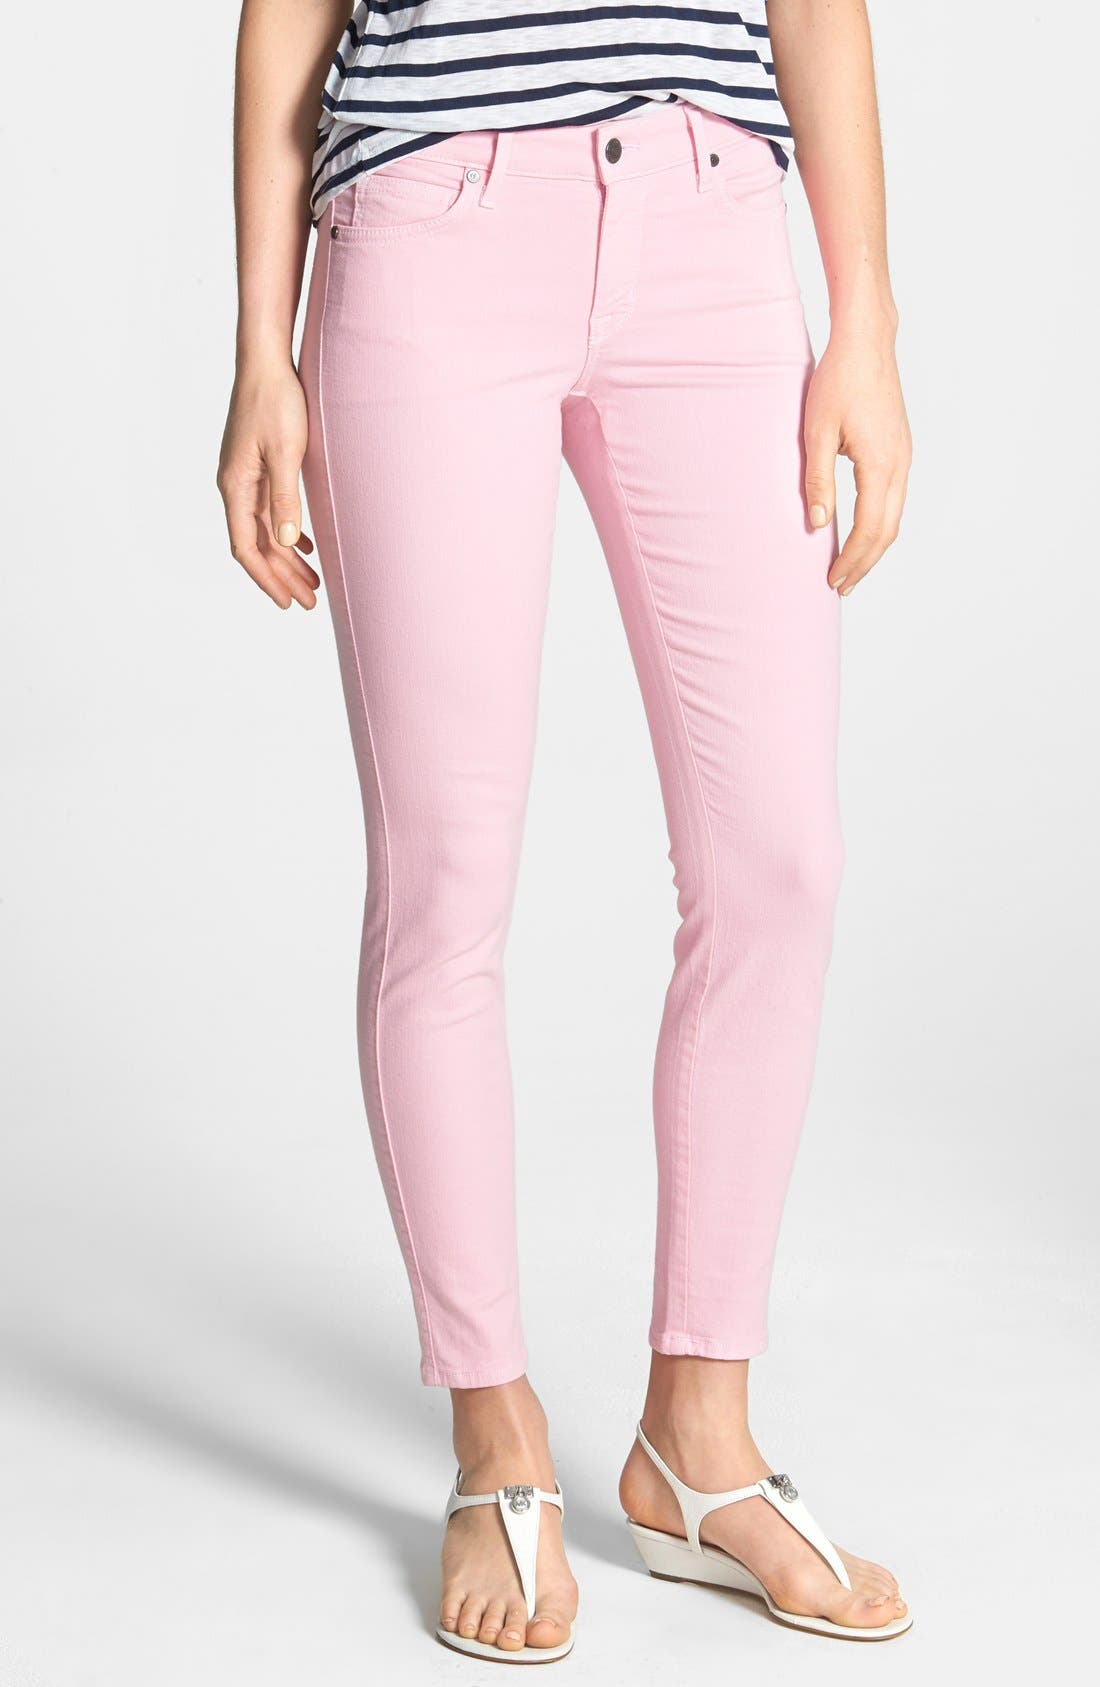 CJ BY COOKIE JOHNSON 'Wisdom' Colored Ankle Skinny Jeans, Main, color, 650